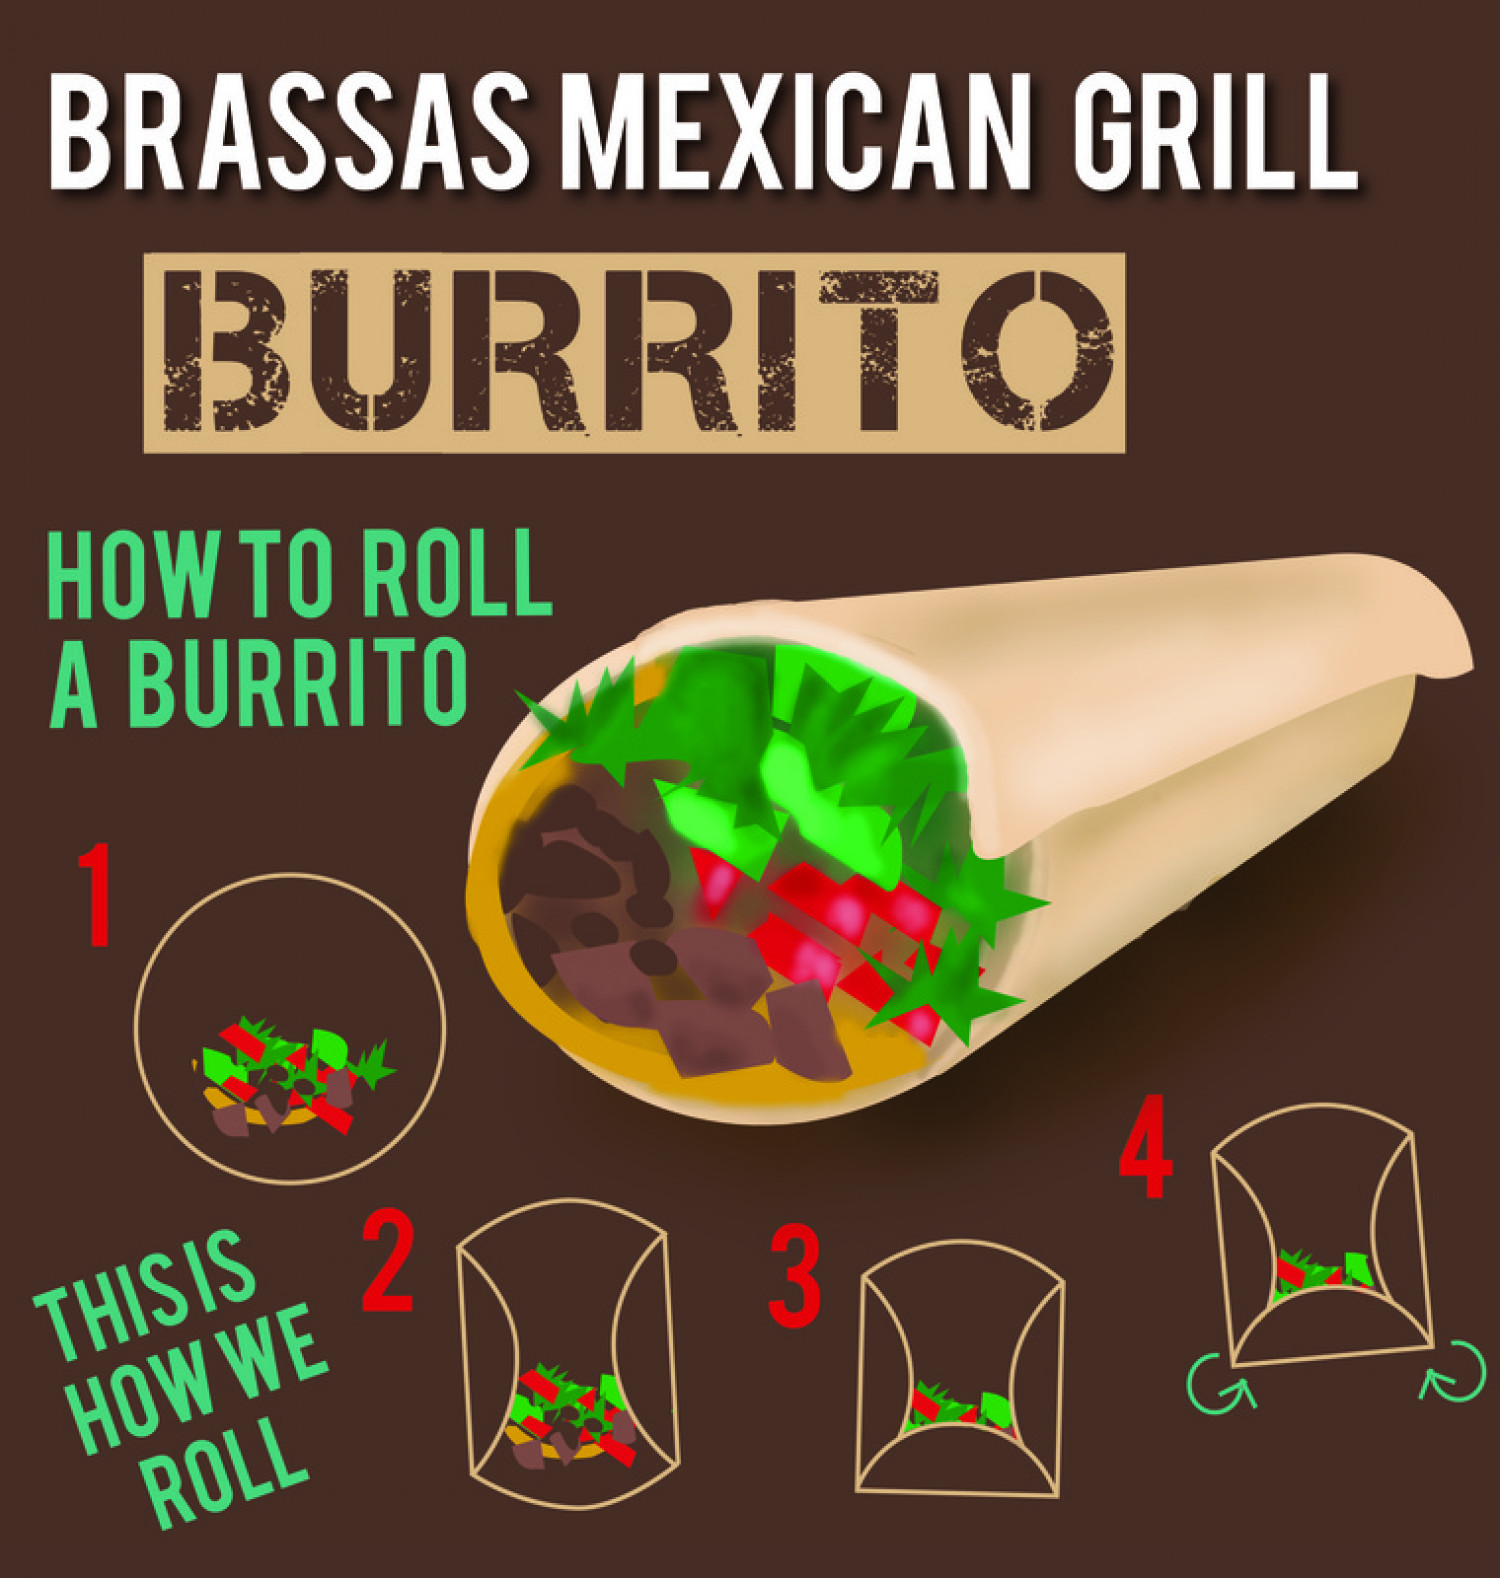 Brassas mexican grill how to roll a burrito visual brassas mexican grill how to roll a burrito infographic pooptronica